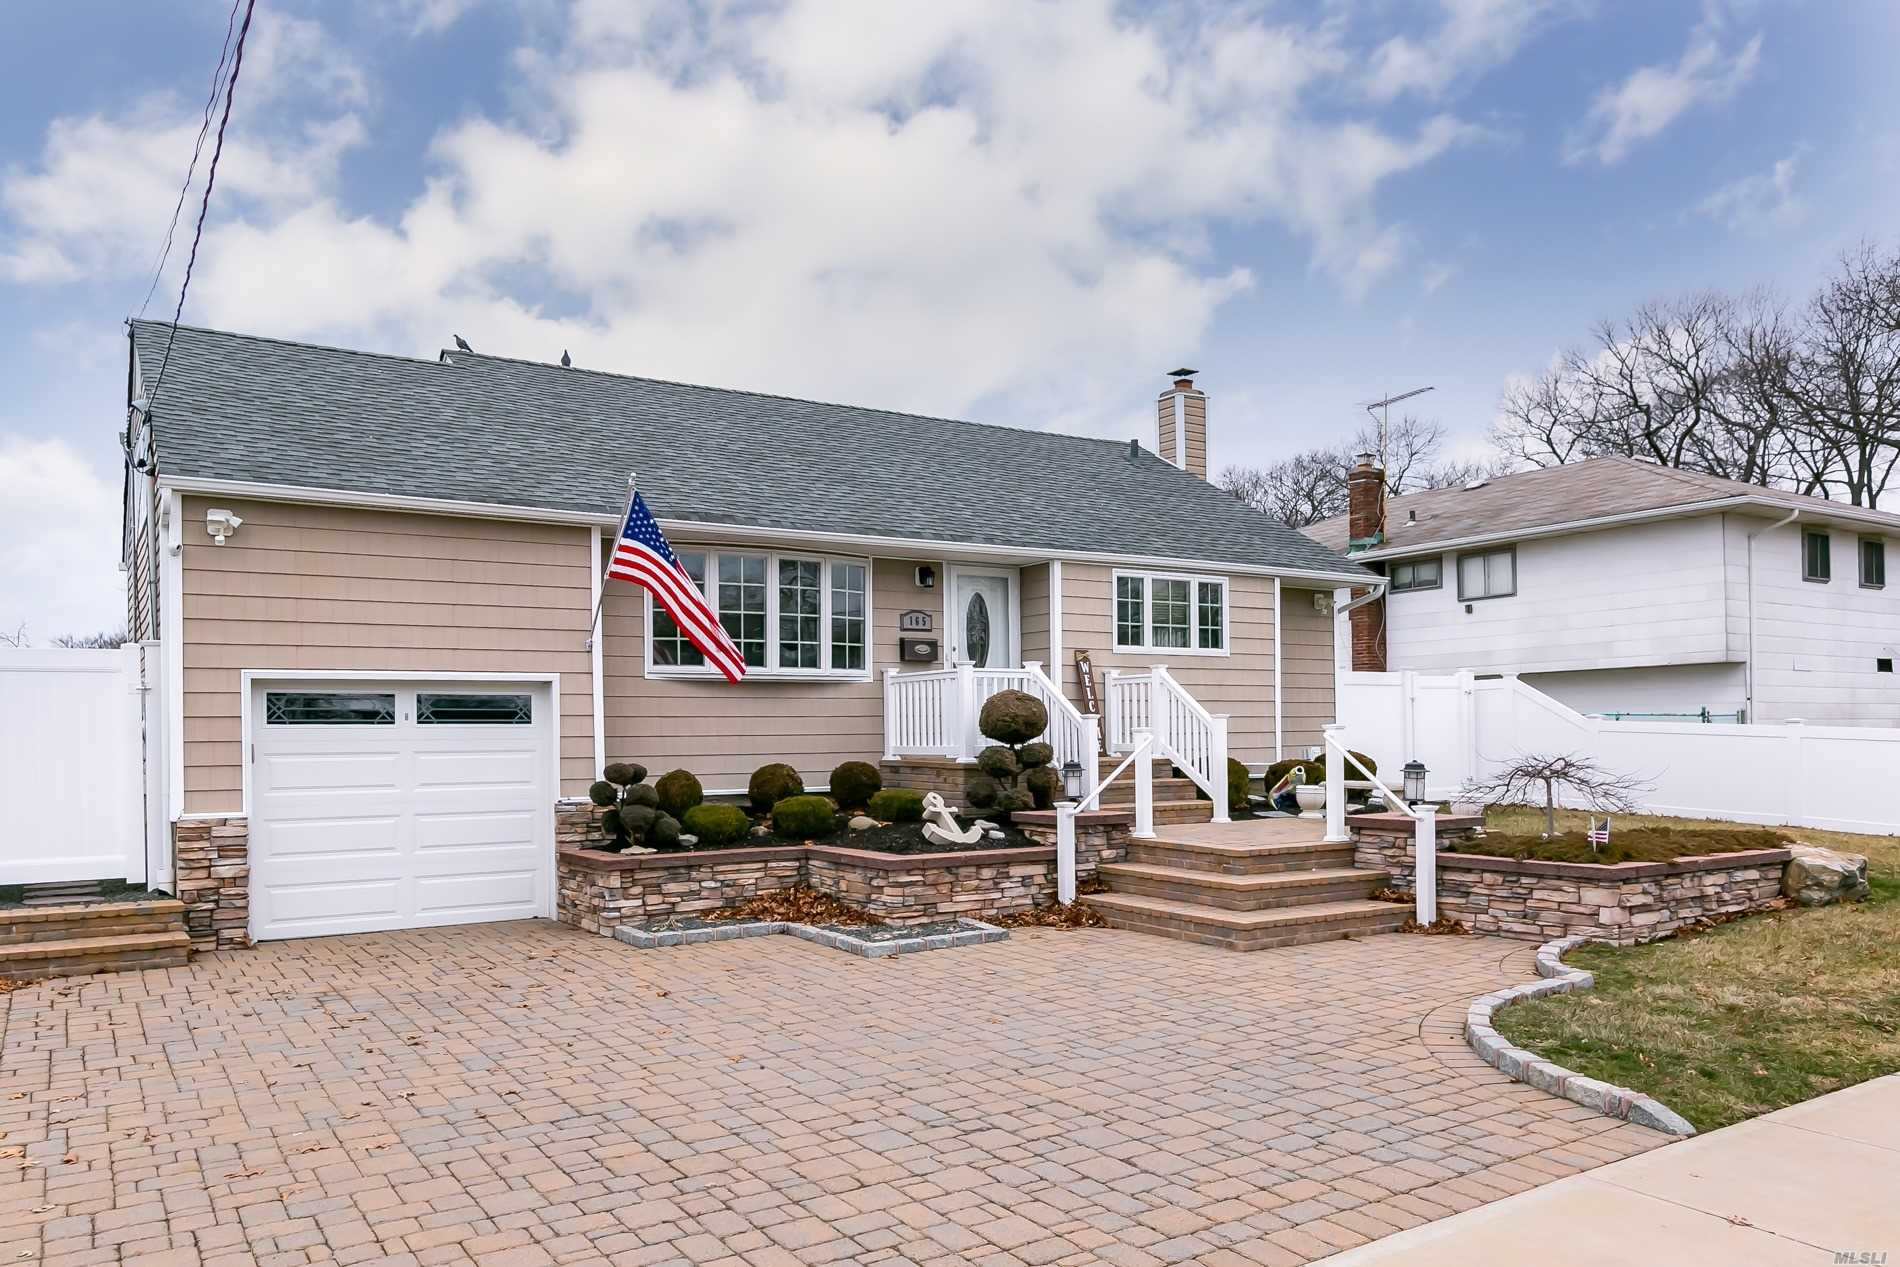 Beautifully Updated And Meticulously Maintained Ranch In Woodward Pkwy School. This House Has Everything You Can Ask For, Large Eat In Kitchen, Hardwood Floors, Cac, Igs, Upgraded Electric, Solar Panels, Beautiful Pavers With An Extra Wide Driveway And A Large Backyard Which Is Perfect For Entertaining.